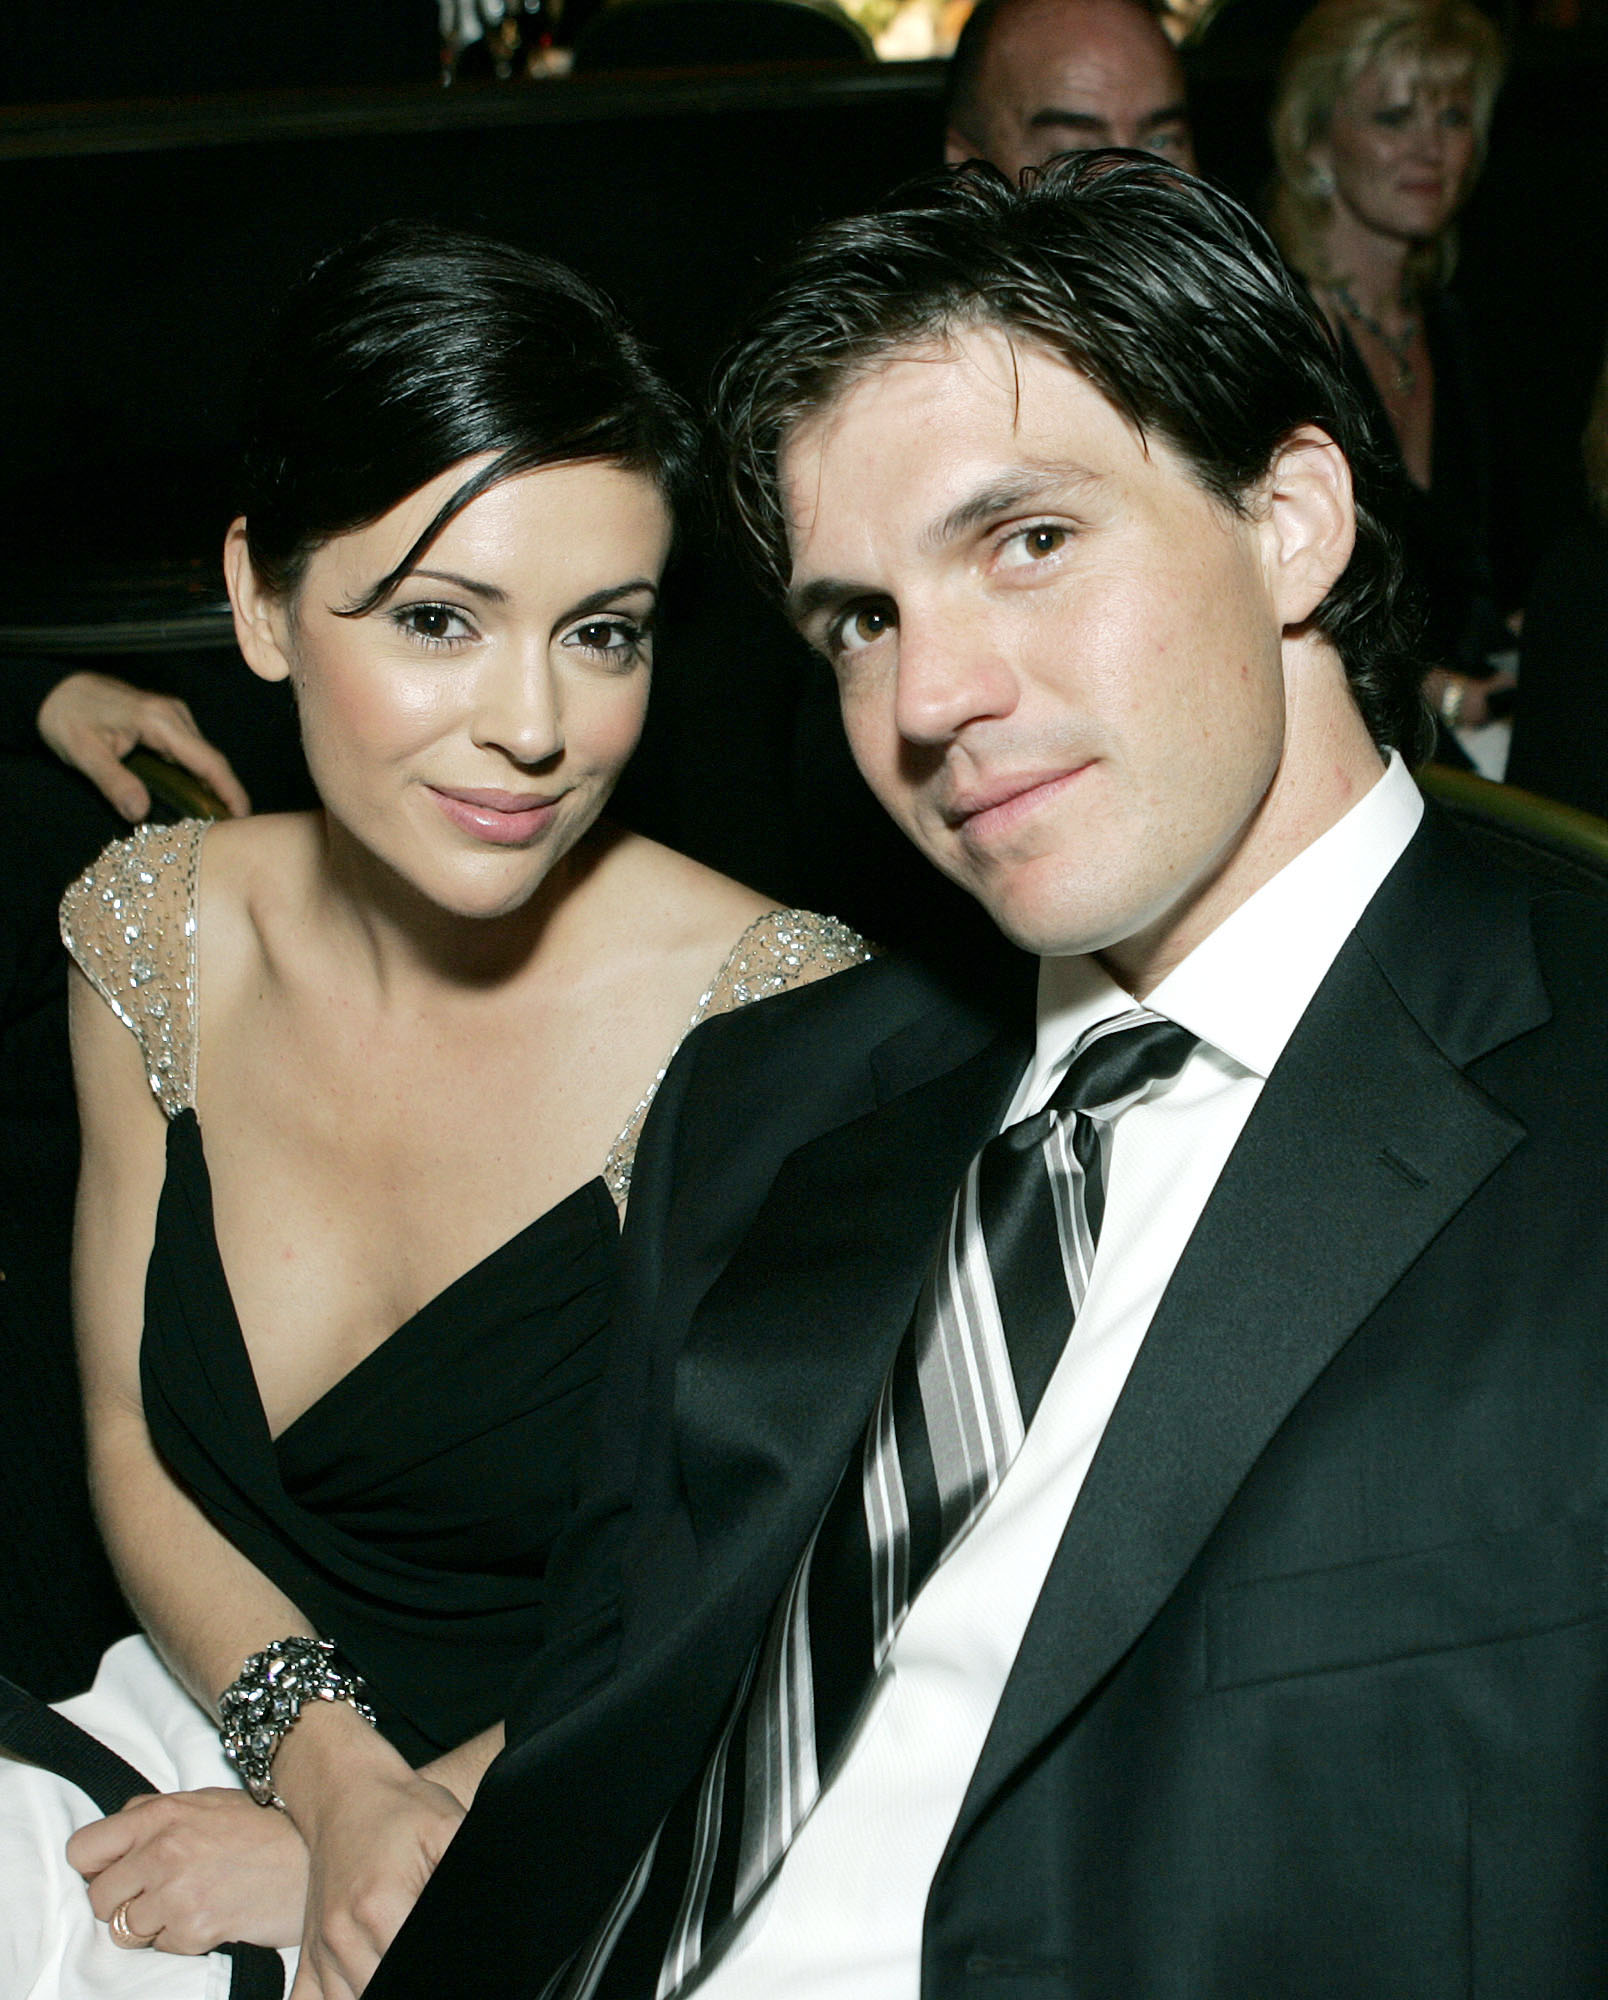 Barry zito wife